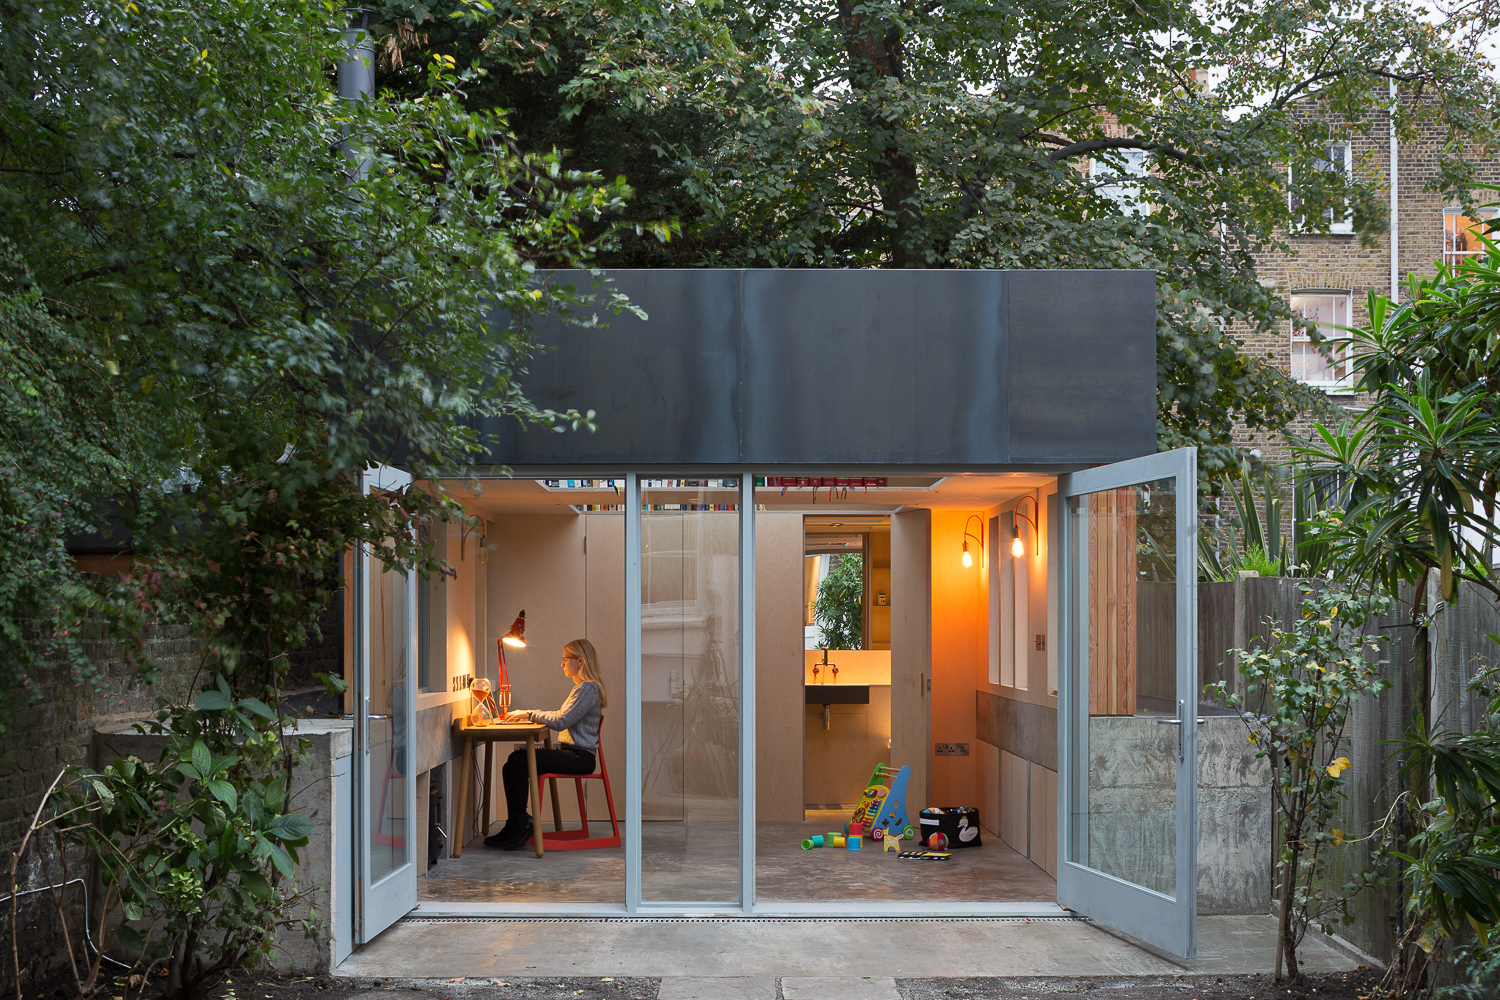 Hereu0027s A Marvellous Garden Office In London From Turner Architects Designed  As A Study And For Use As A Spare Room With Storage.